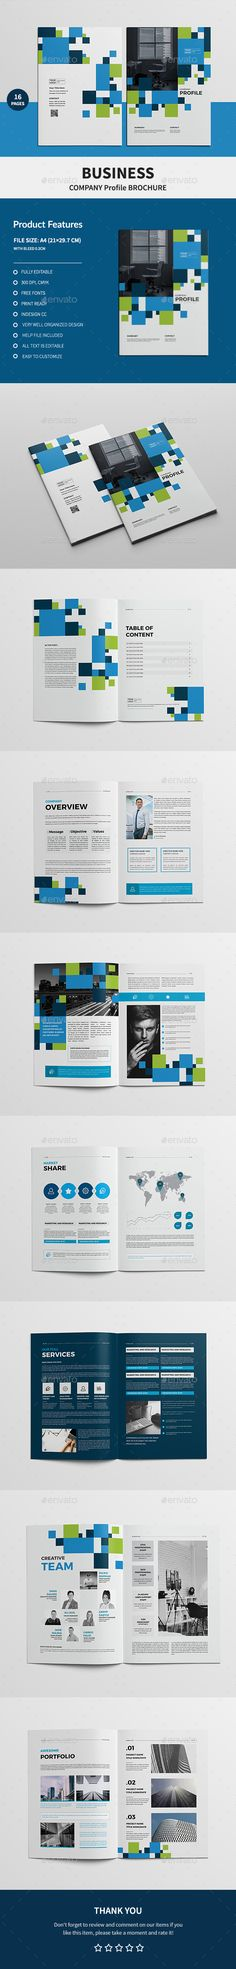 Corporate Company Profile Brochure Company profile, Brochure - profile company template